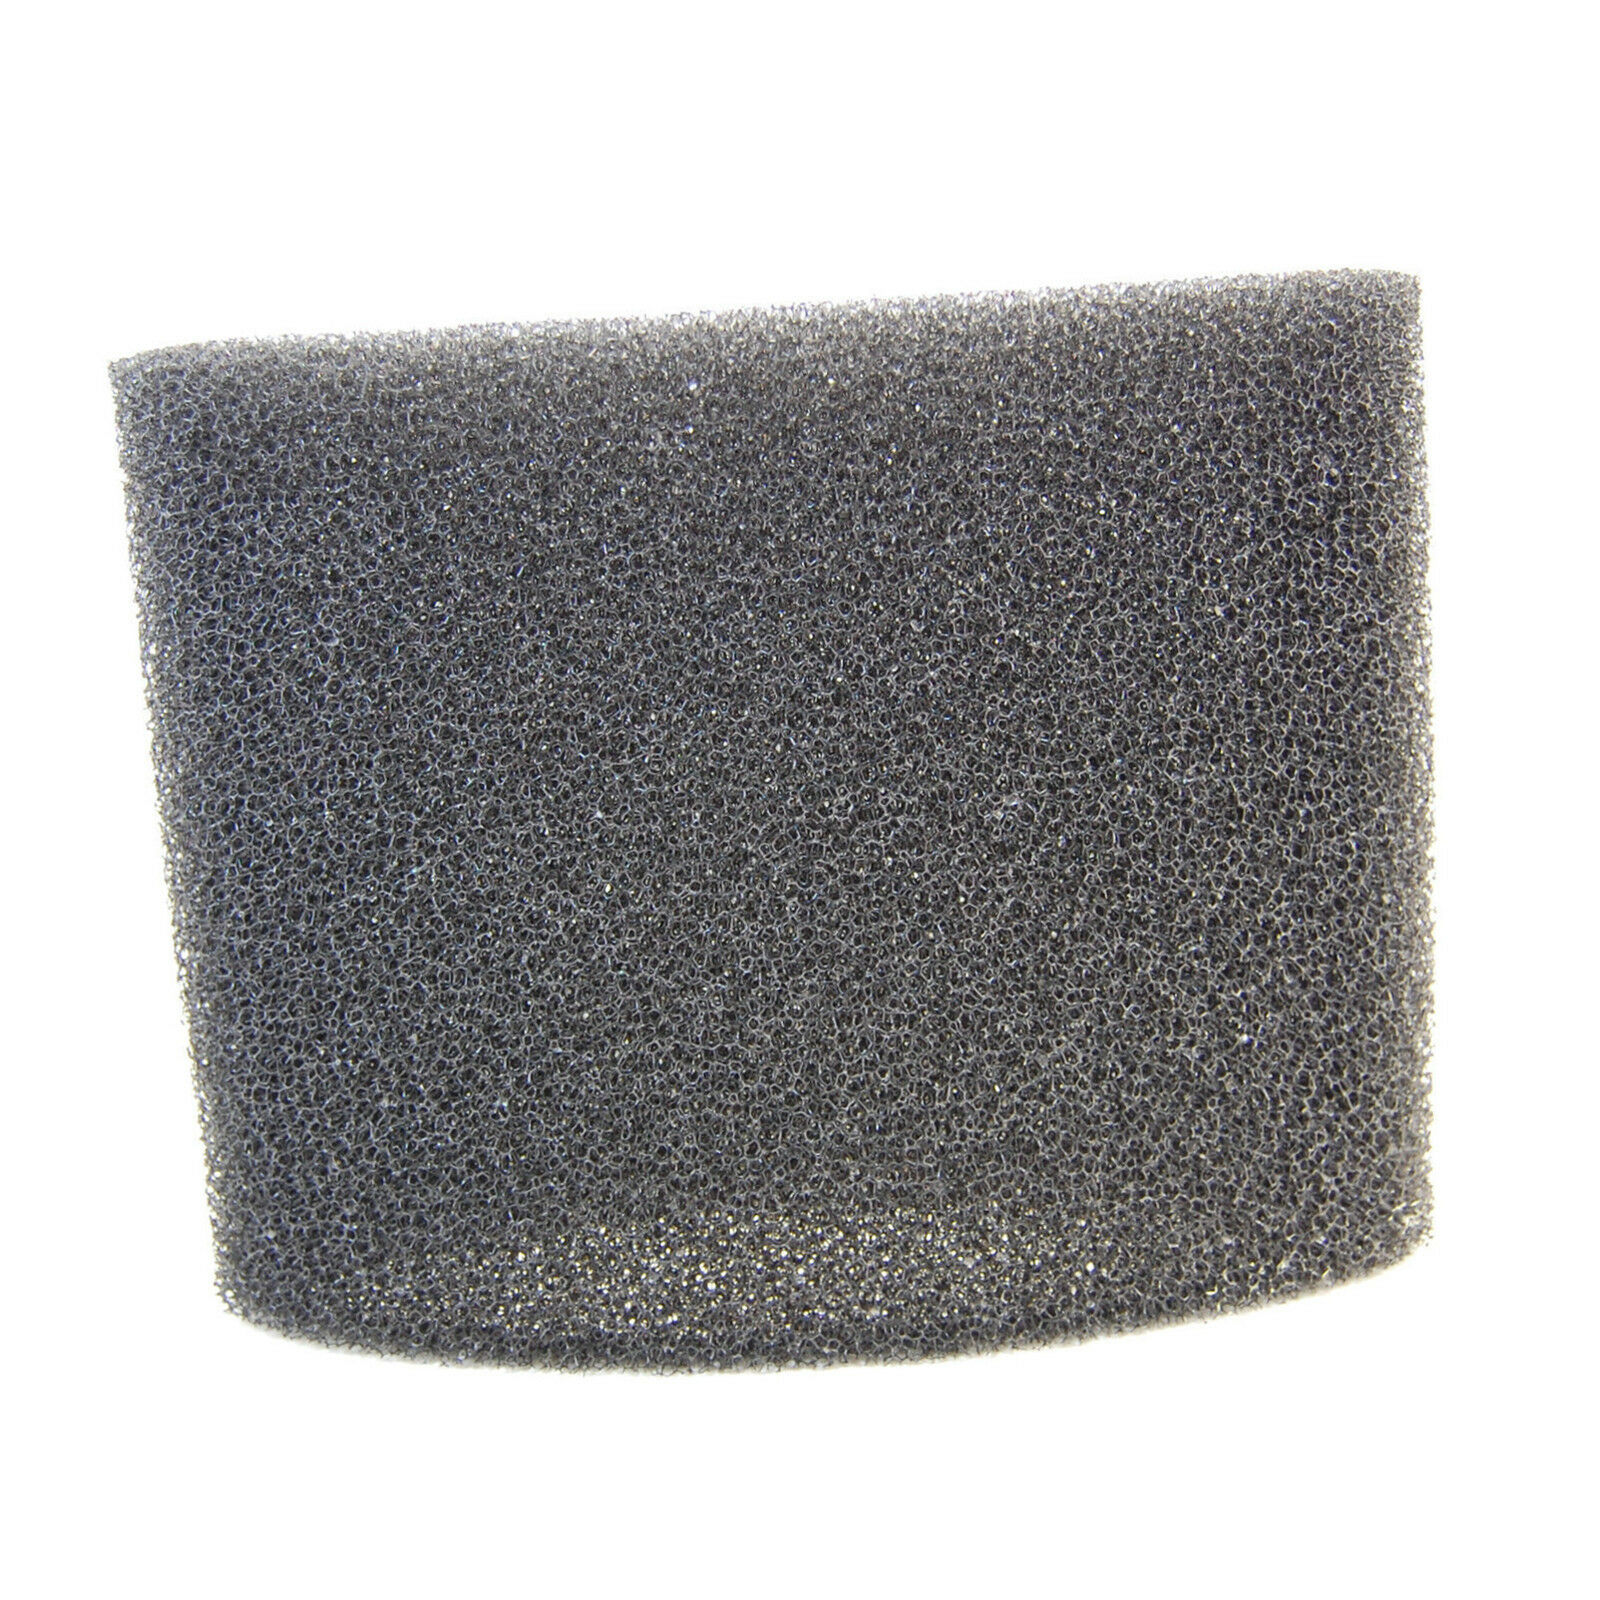 1,2, 4x HQRP Filter Sleeves for Shop-Vac 4045A 464B 464D 8040 8045 8045A 8050A